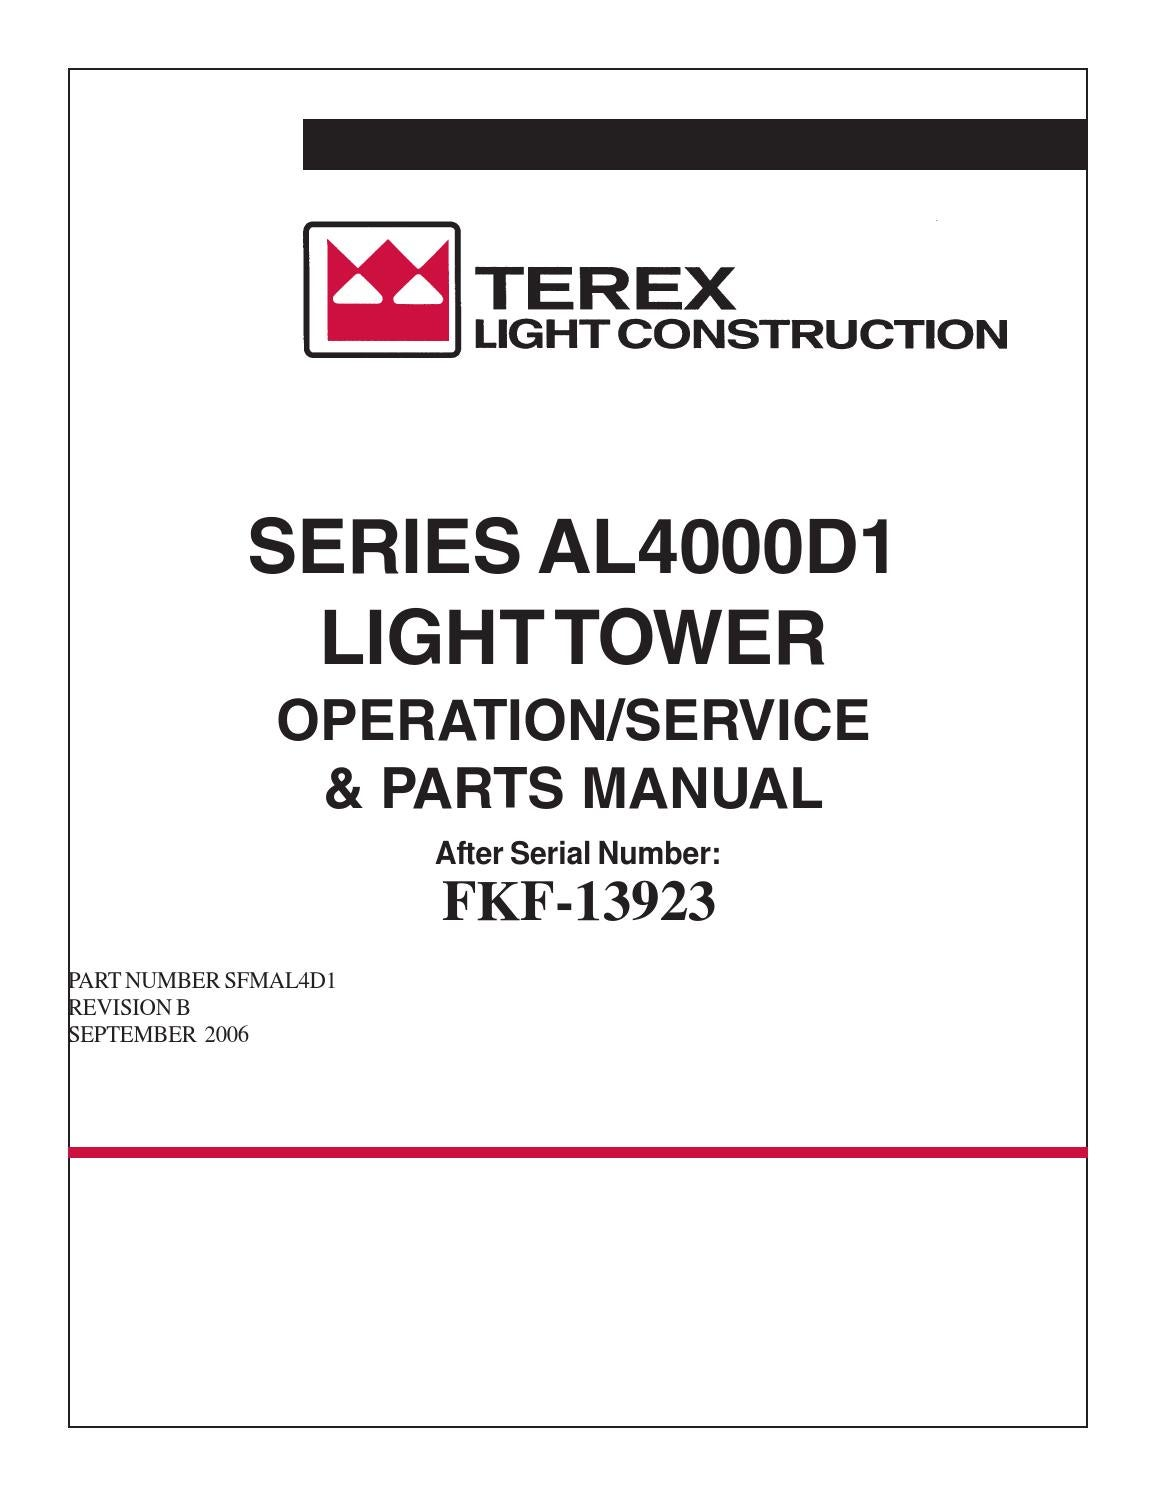 Trailer Wiring Diagram 4 Wire : Terex amida light tower series al d by power